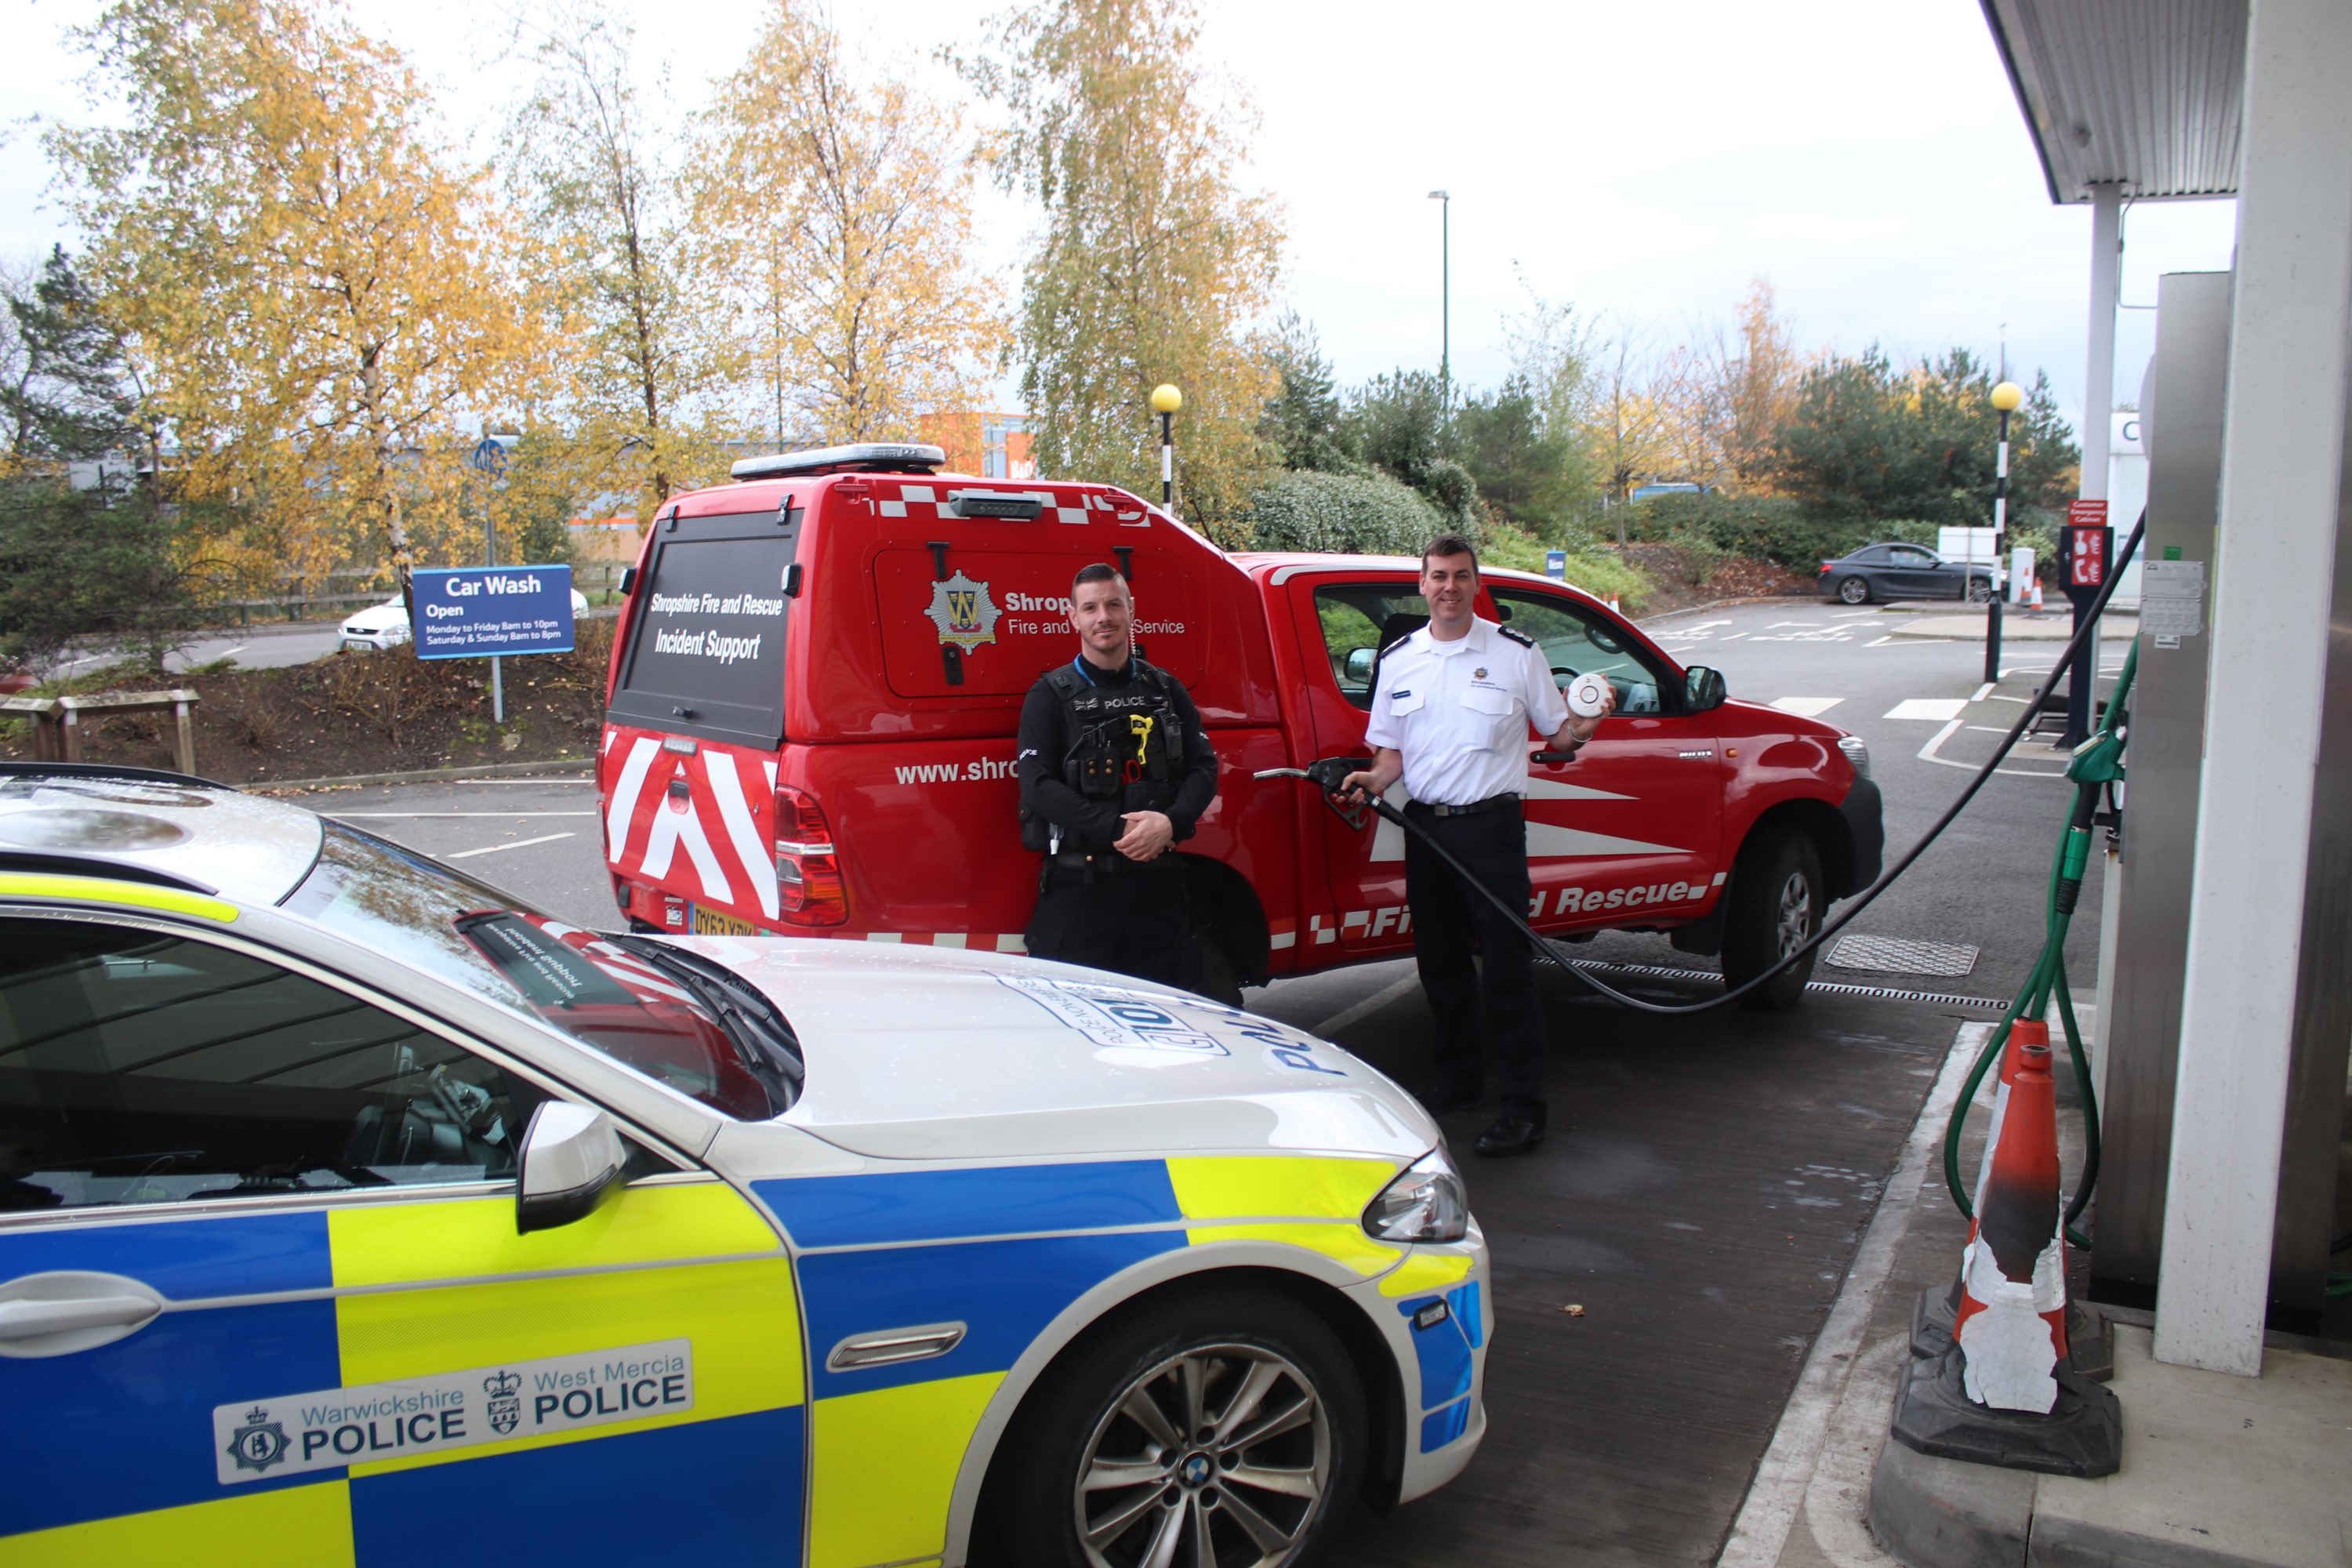 Station Manager James Bainbridge and PC Richard Bramwell launch a joint fire and police safety awareness campaign at the petrol pumps as part of Road Safety Week 2017